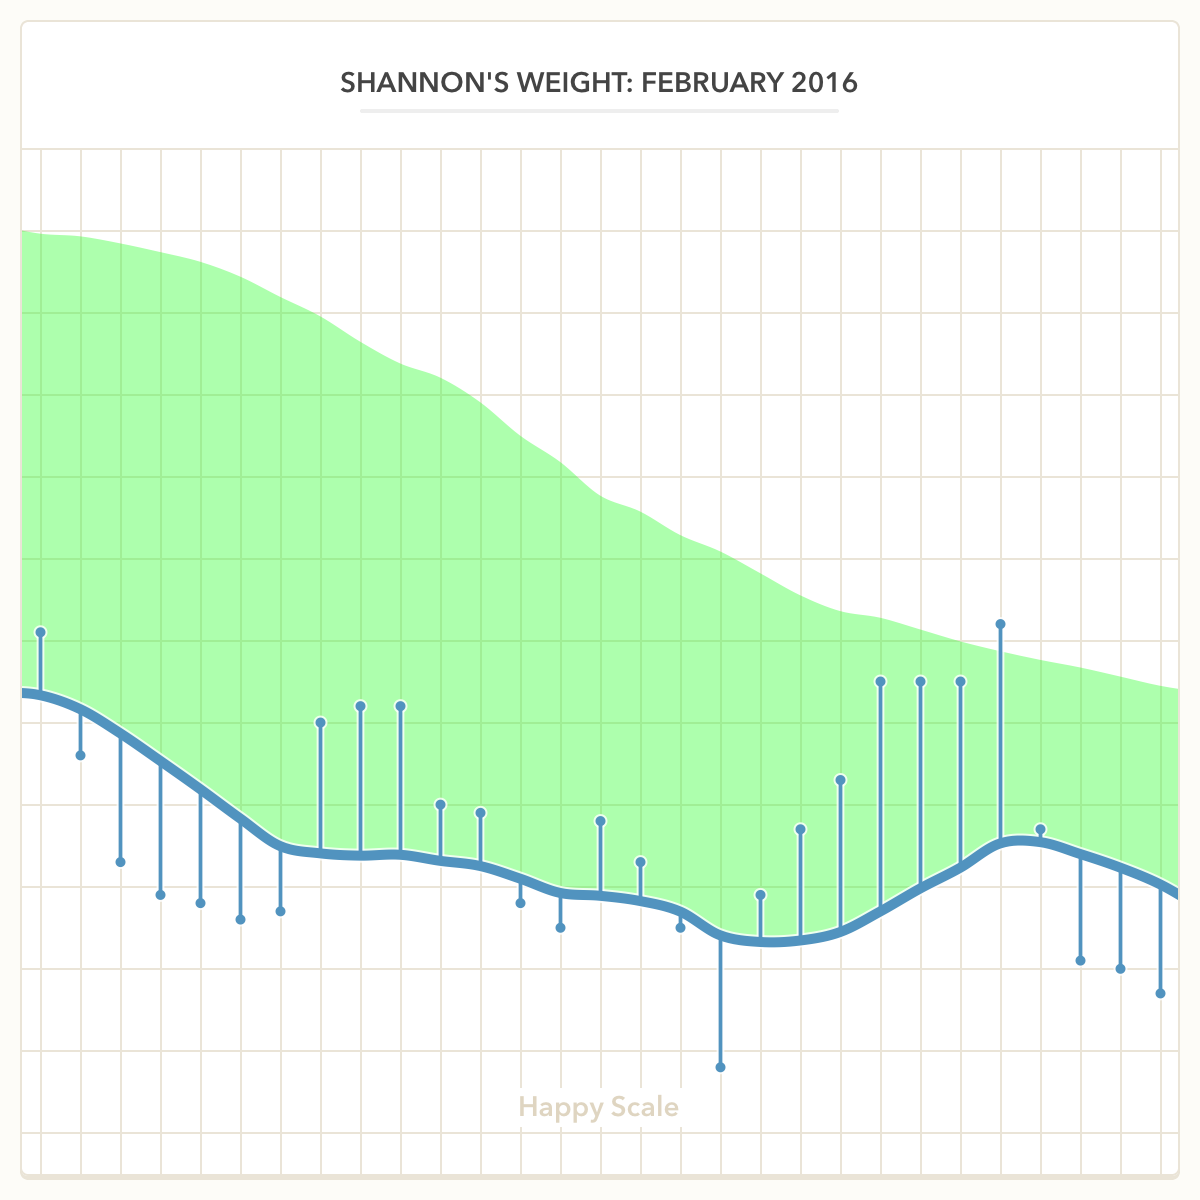 Weight height chart pounds gallery free any chart examples weight height chart pounds images free any chart examples weight height chart pounds images free any nvjuhfo Choice Image